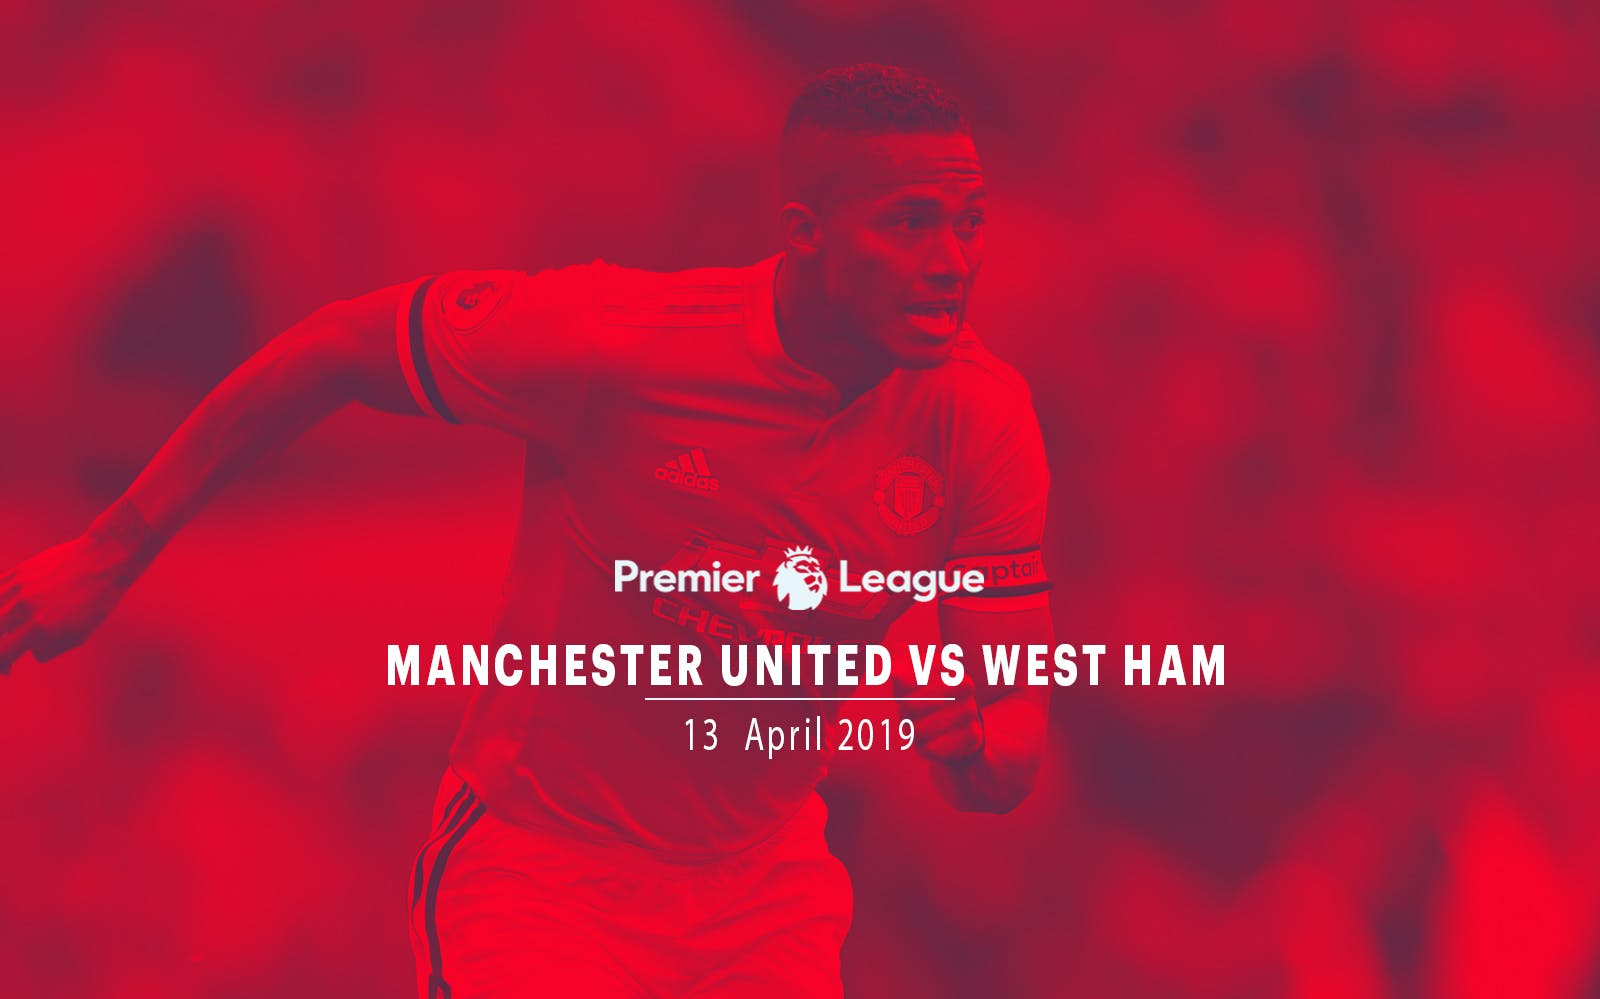 manchester united vs west ham -13 april 2019-1